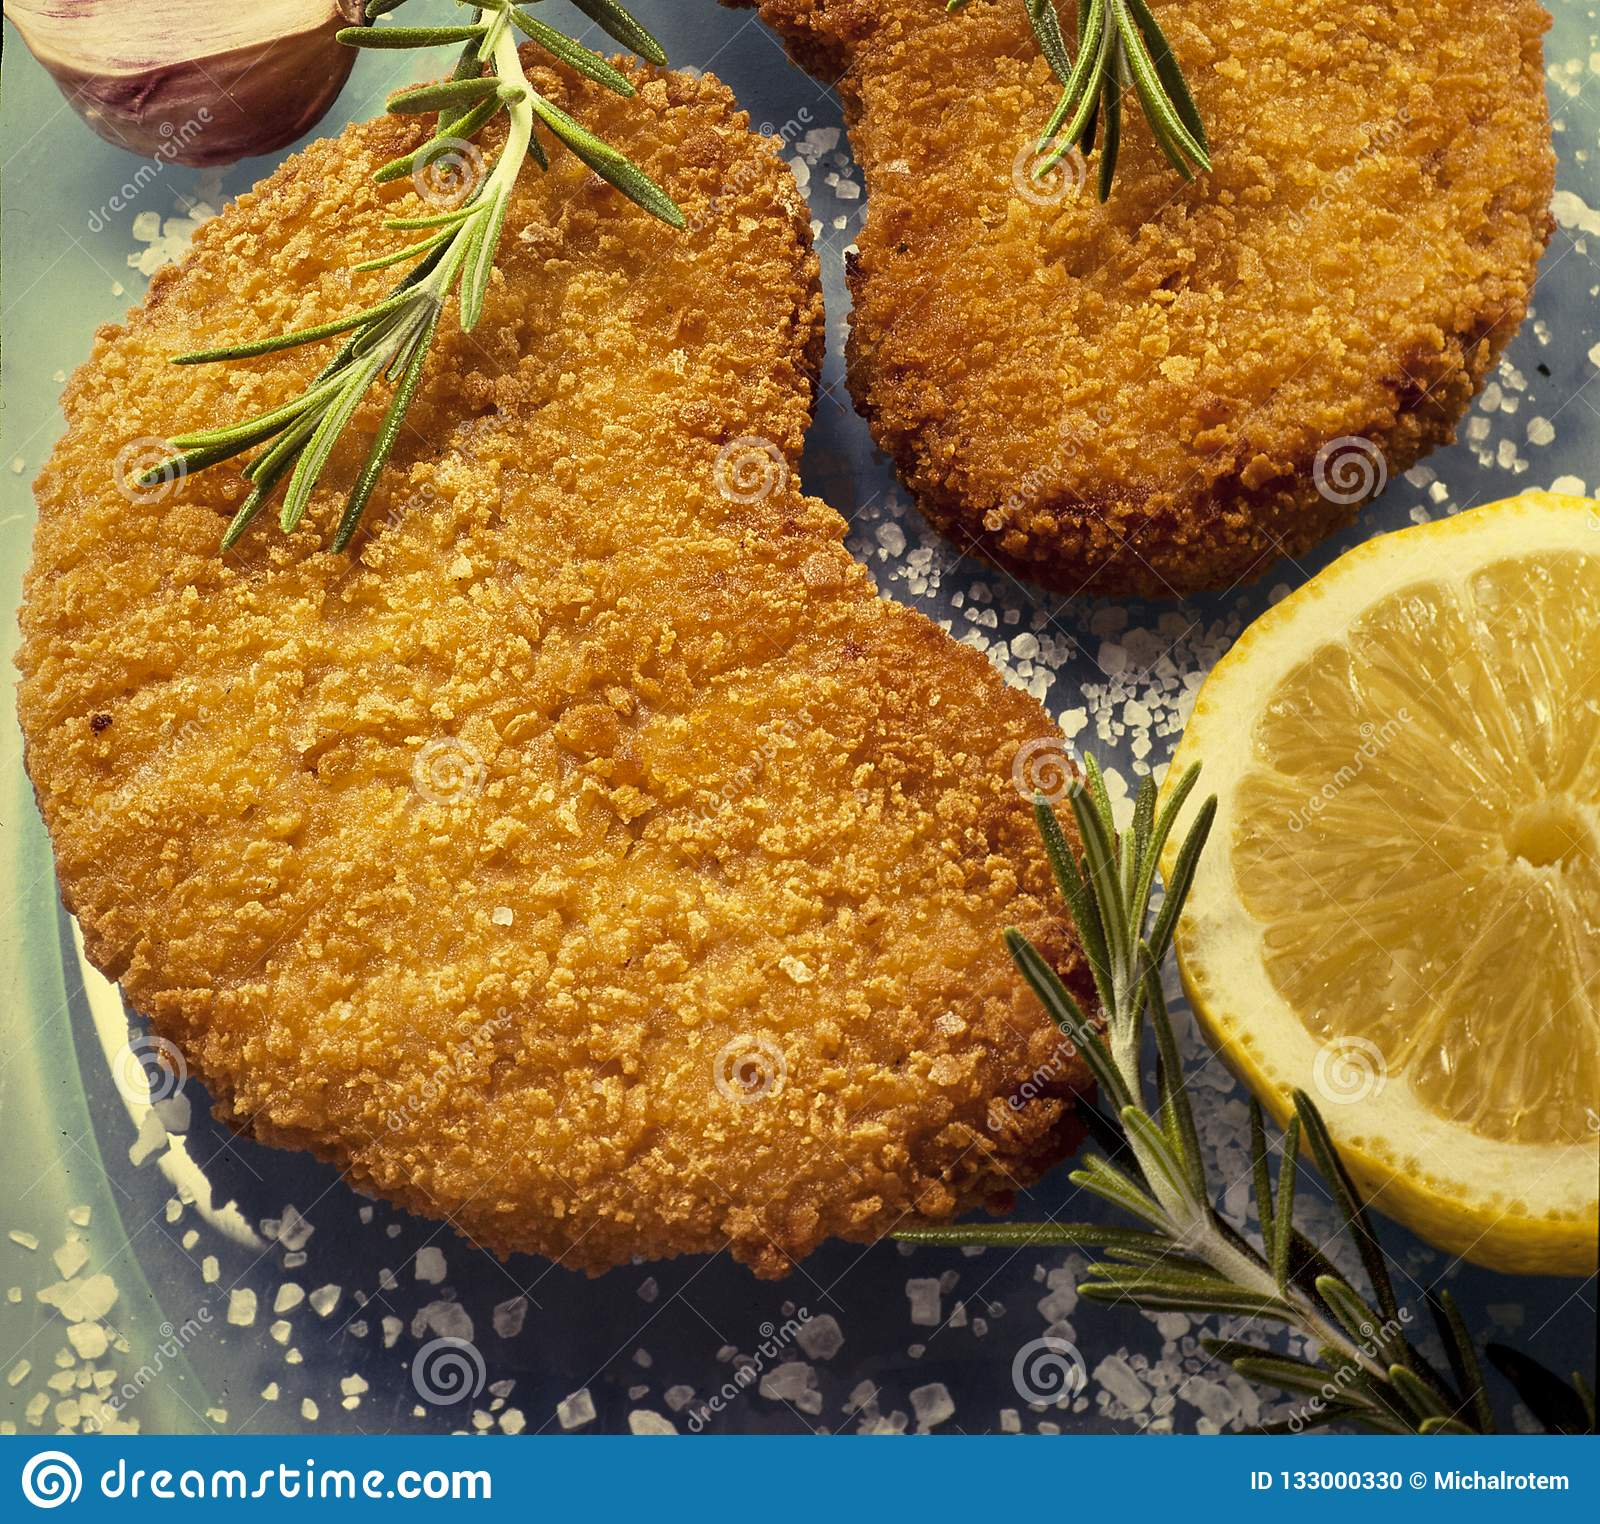 Schnitzel Restaurant Schnitzel Restaurant Fried Meat Meats Coated With Flourin Oil